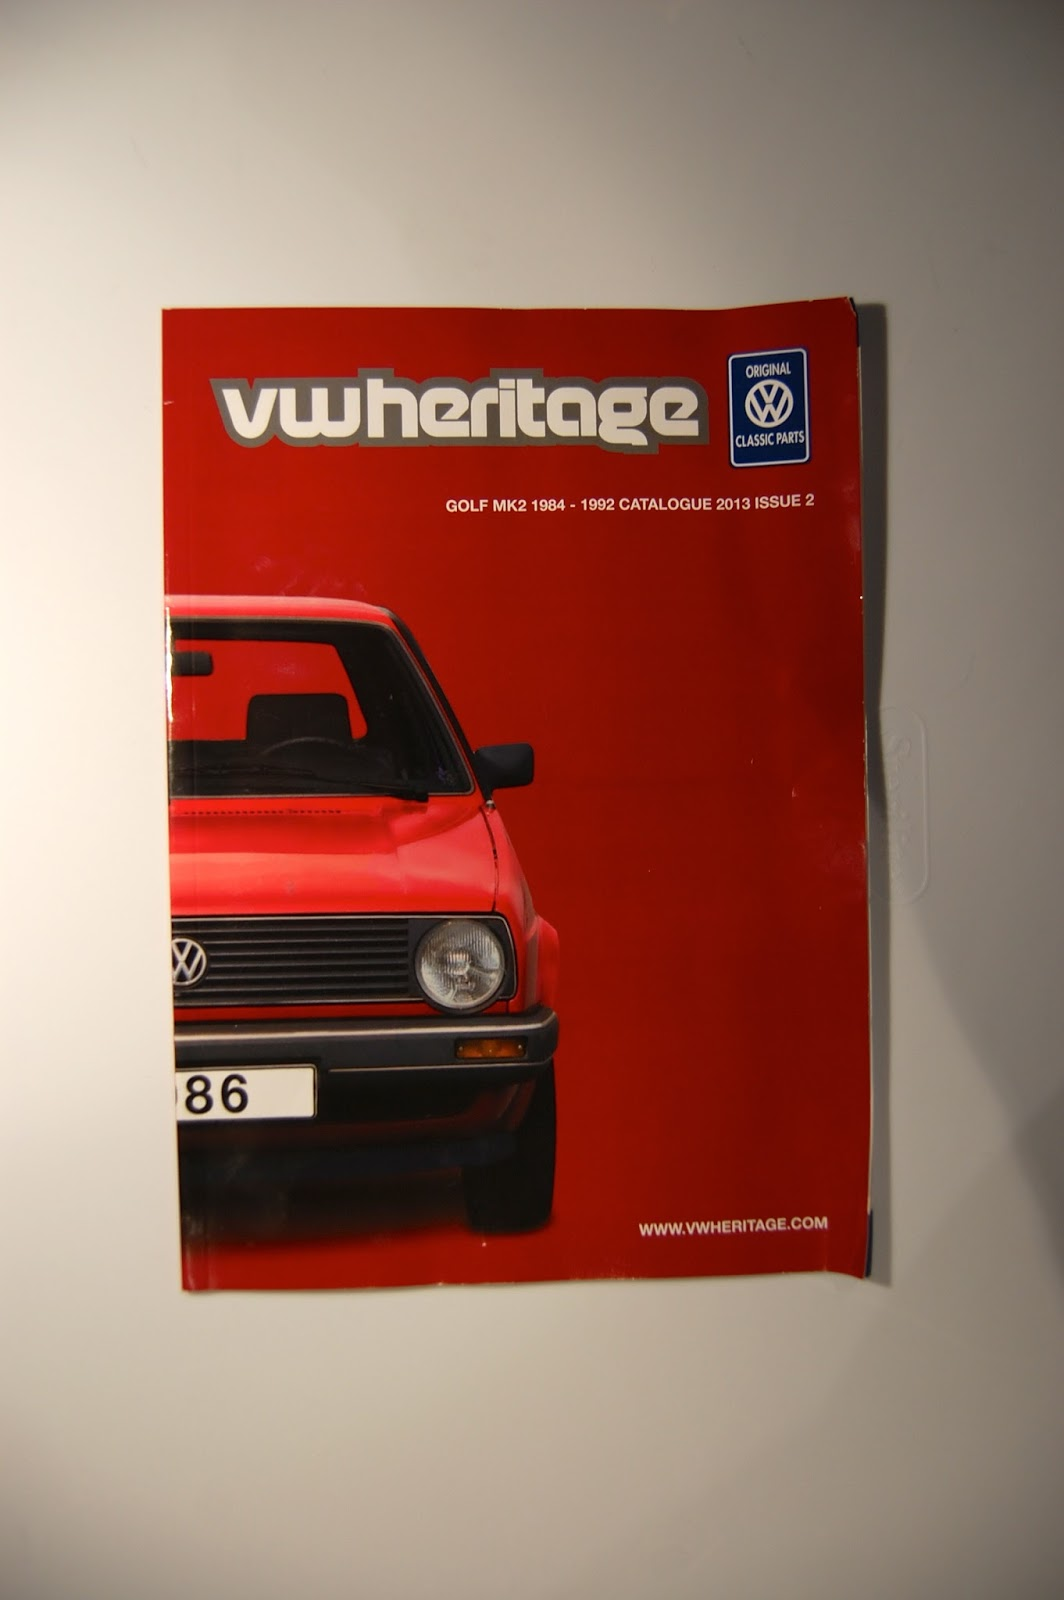 Installing An External Oil Cooler Vw Mkii Golf Gl Project Mk3 Central Locking Wiring Diagram I Had Already Been Exploring Vwheritages Site For My 16v When Received Email From Them Informing Me That Theyd Like To Send Something